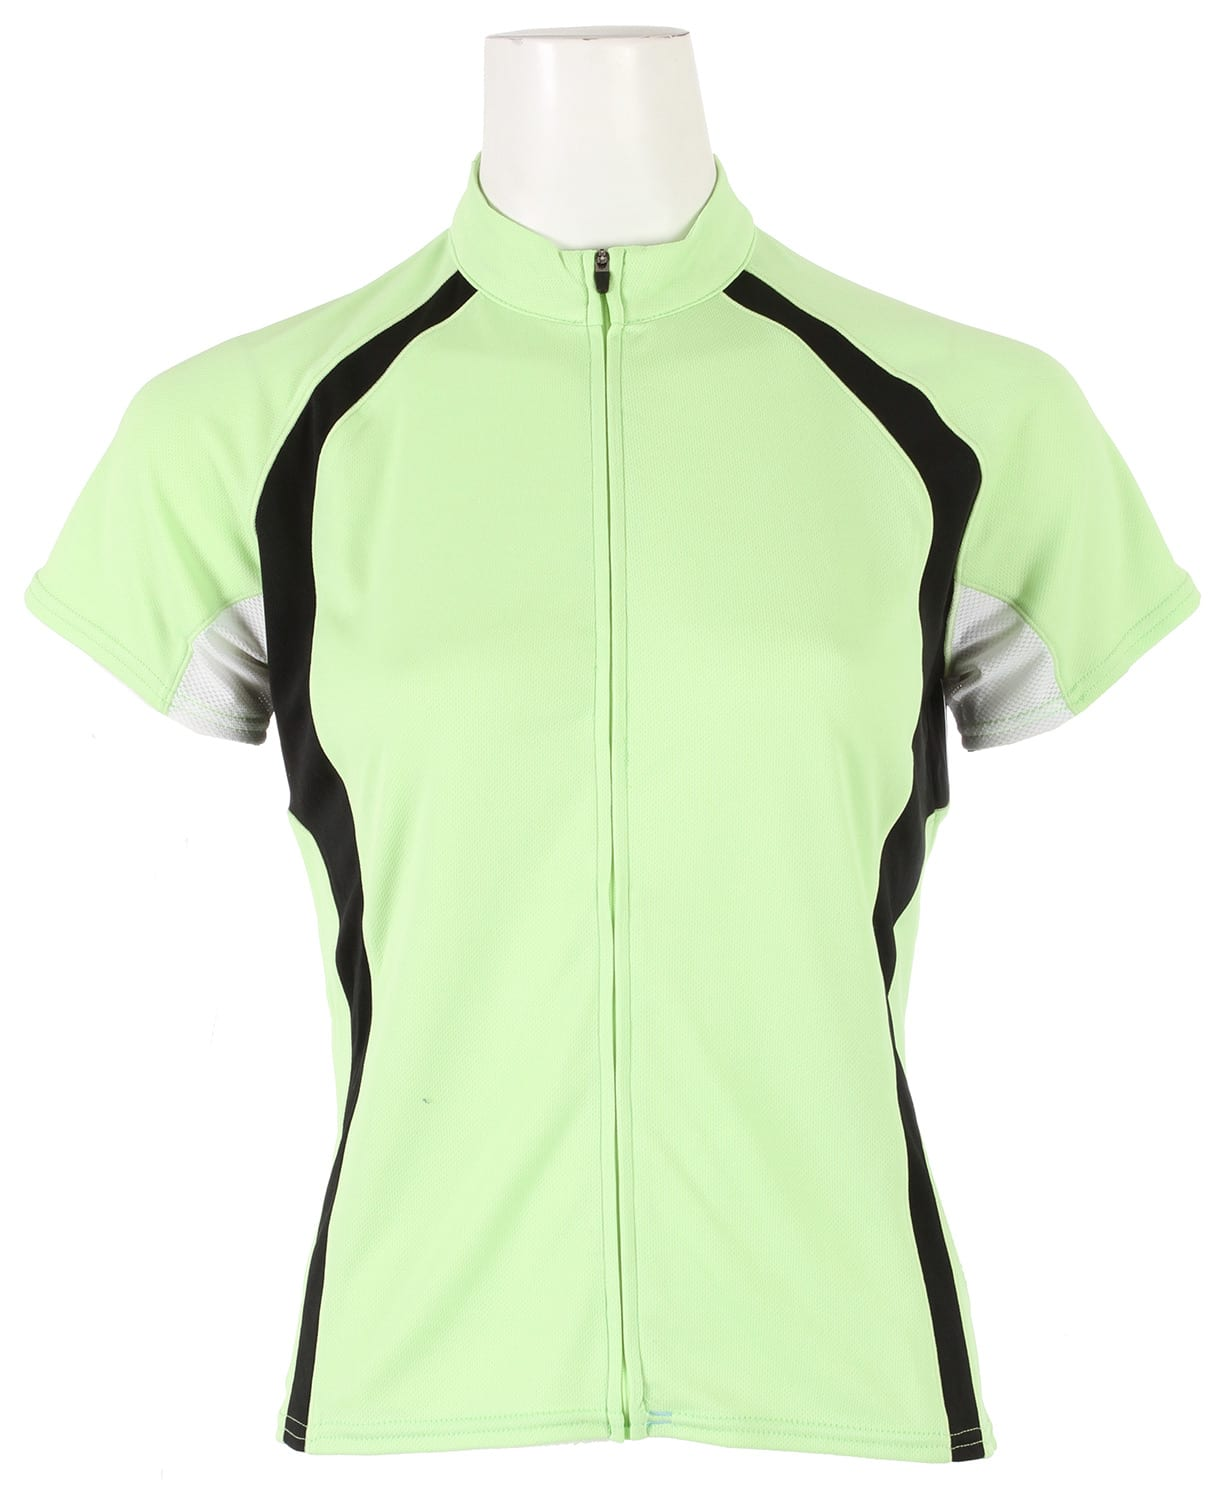 On sale cannondale classic bike jersey womens up to 55 off for Classic new jersey house music